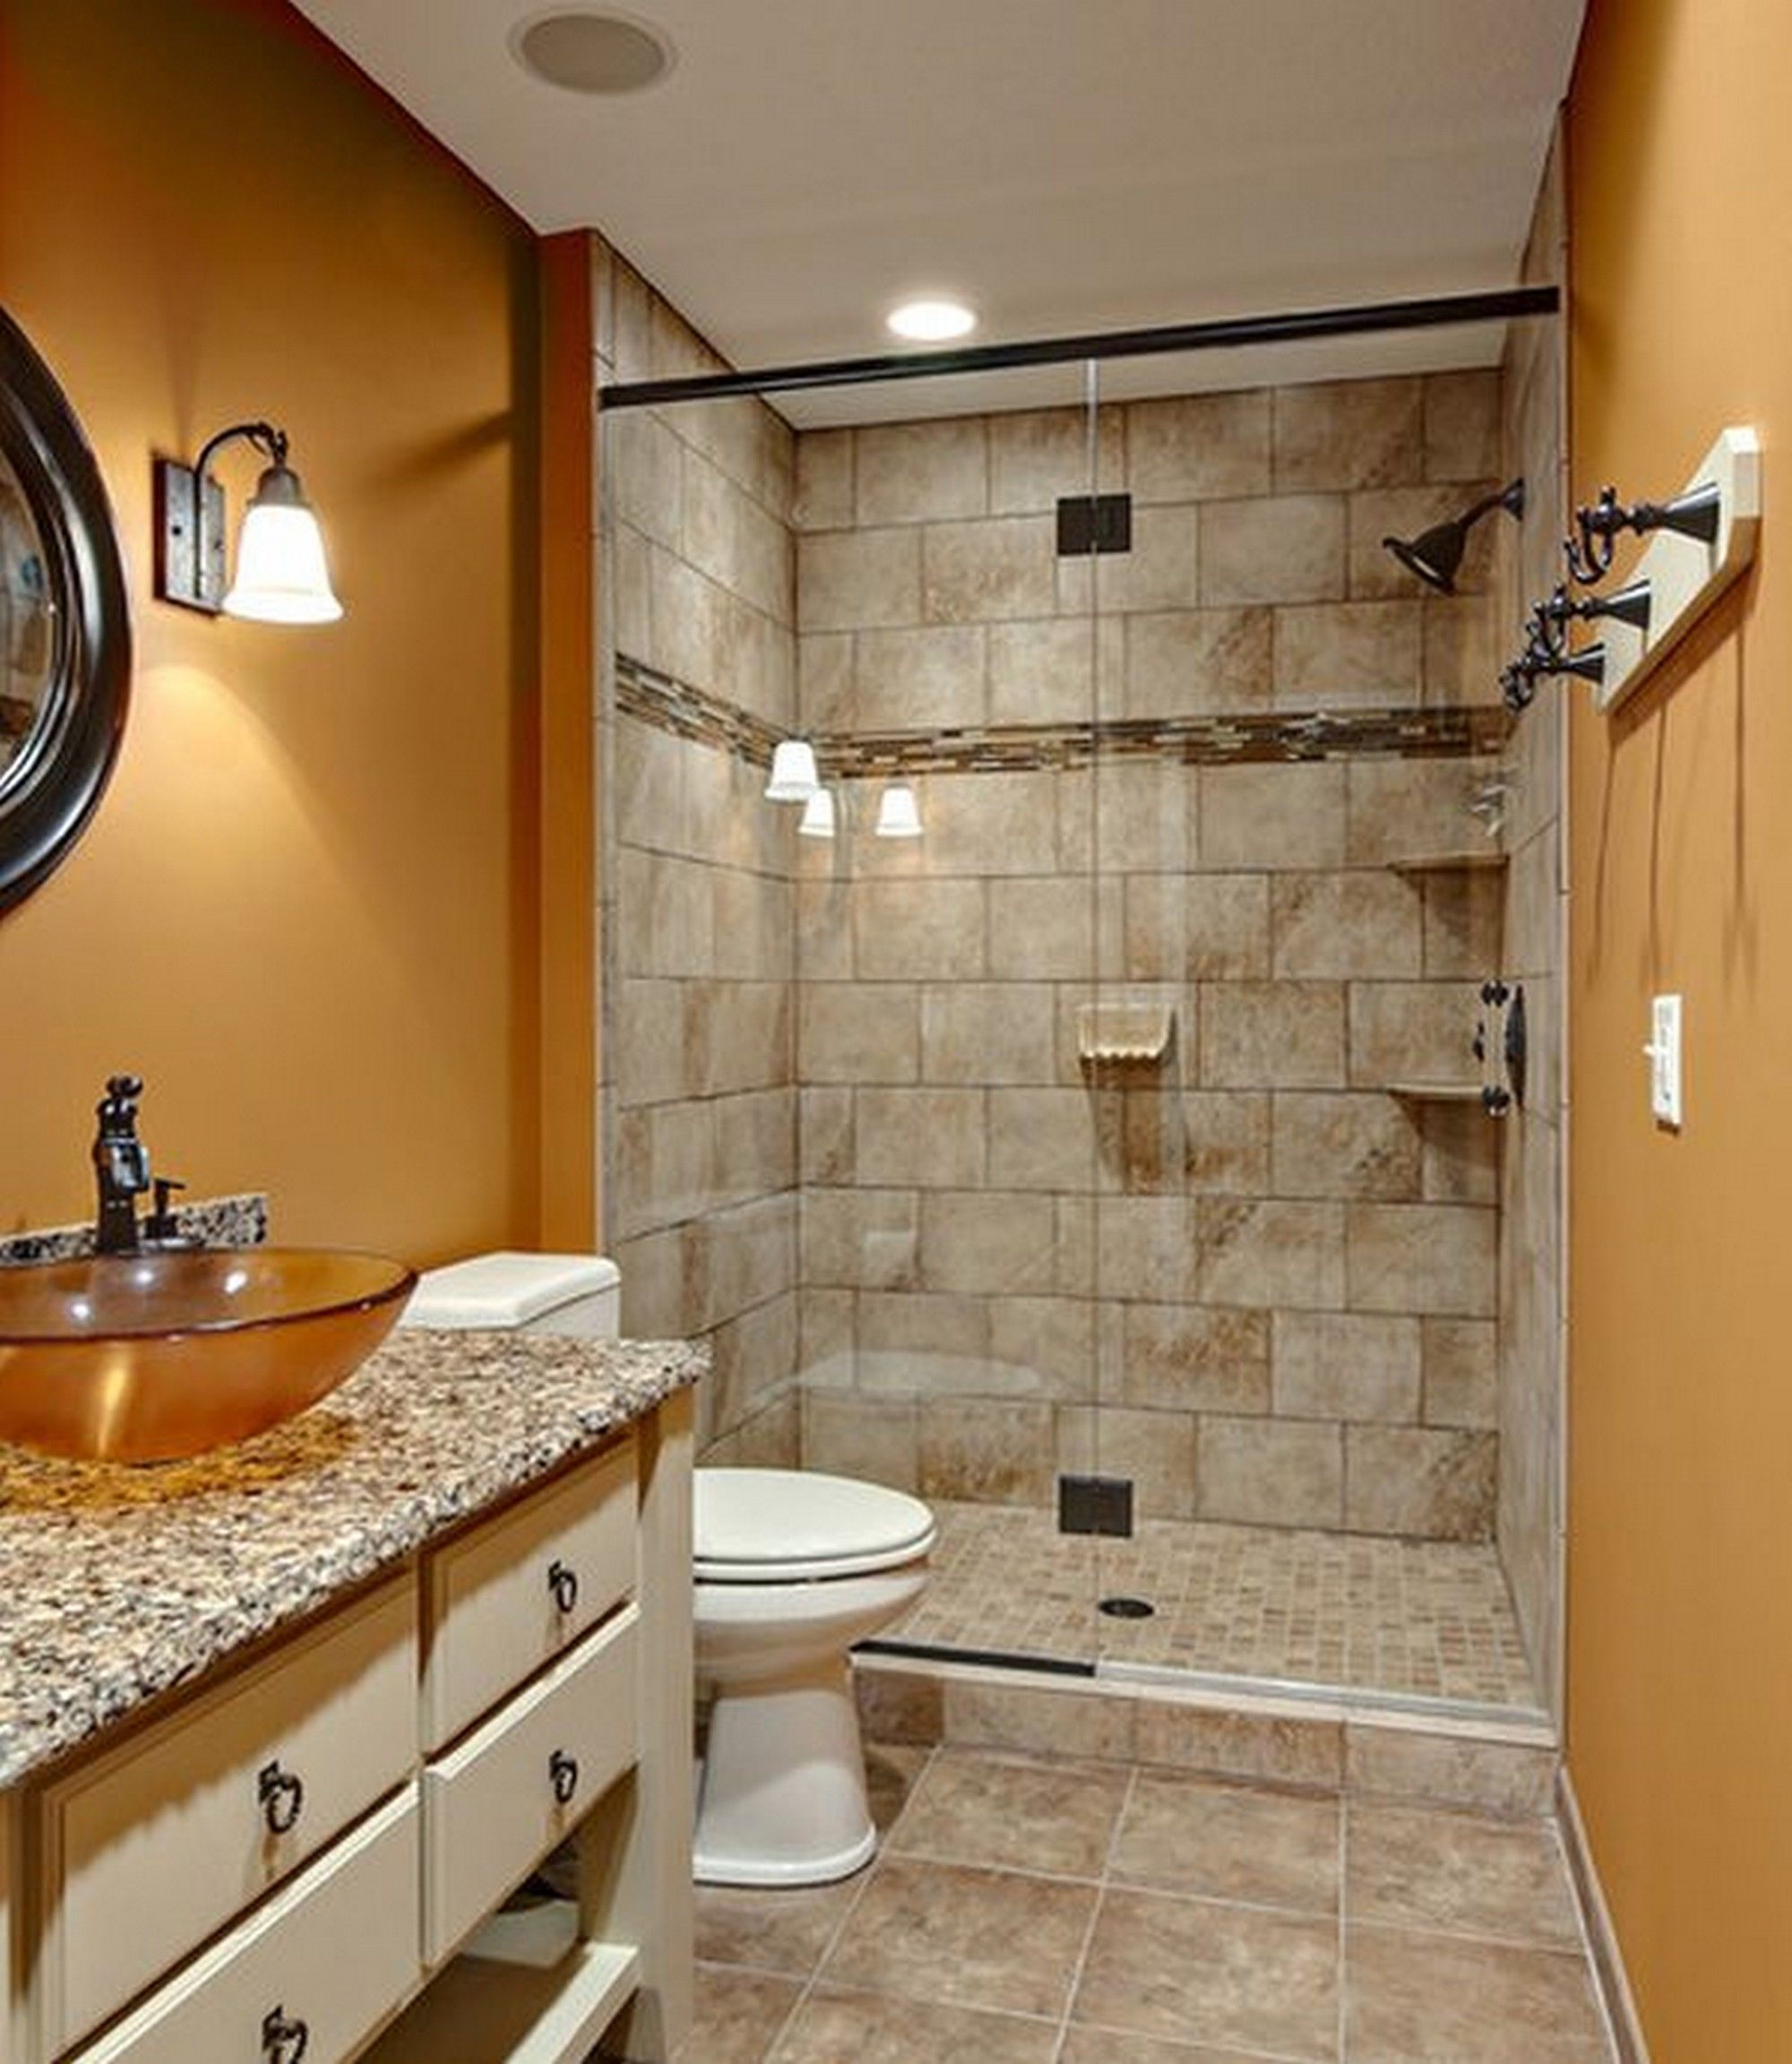 Shower bathrooms ideas - Small Bathroom Designs With Shower Only Fcfl2yeuk Home Decor Pinterest Small Bathroom Designs Small Bathroom And Bathroom Designs